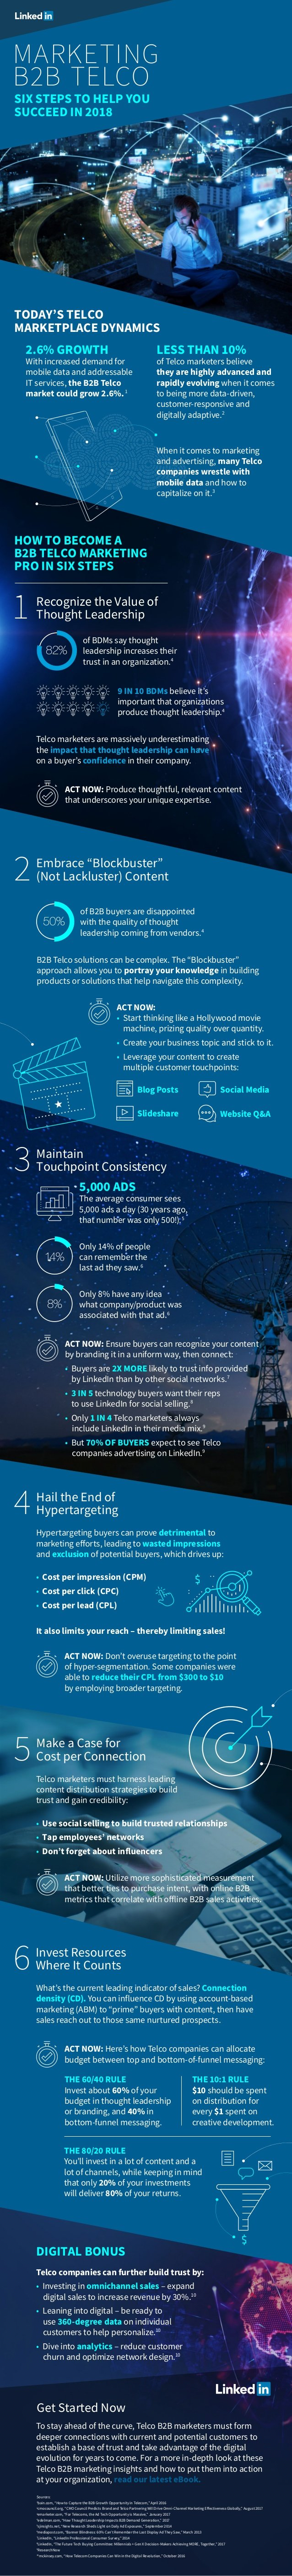 LinkedIn Offers Tips to Help Telco Marketers Succeed in 2018 [Infographic] | Social Media Today